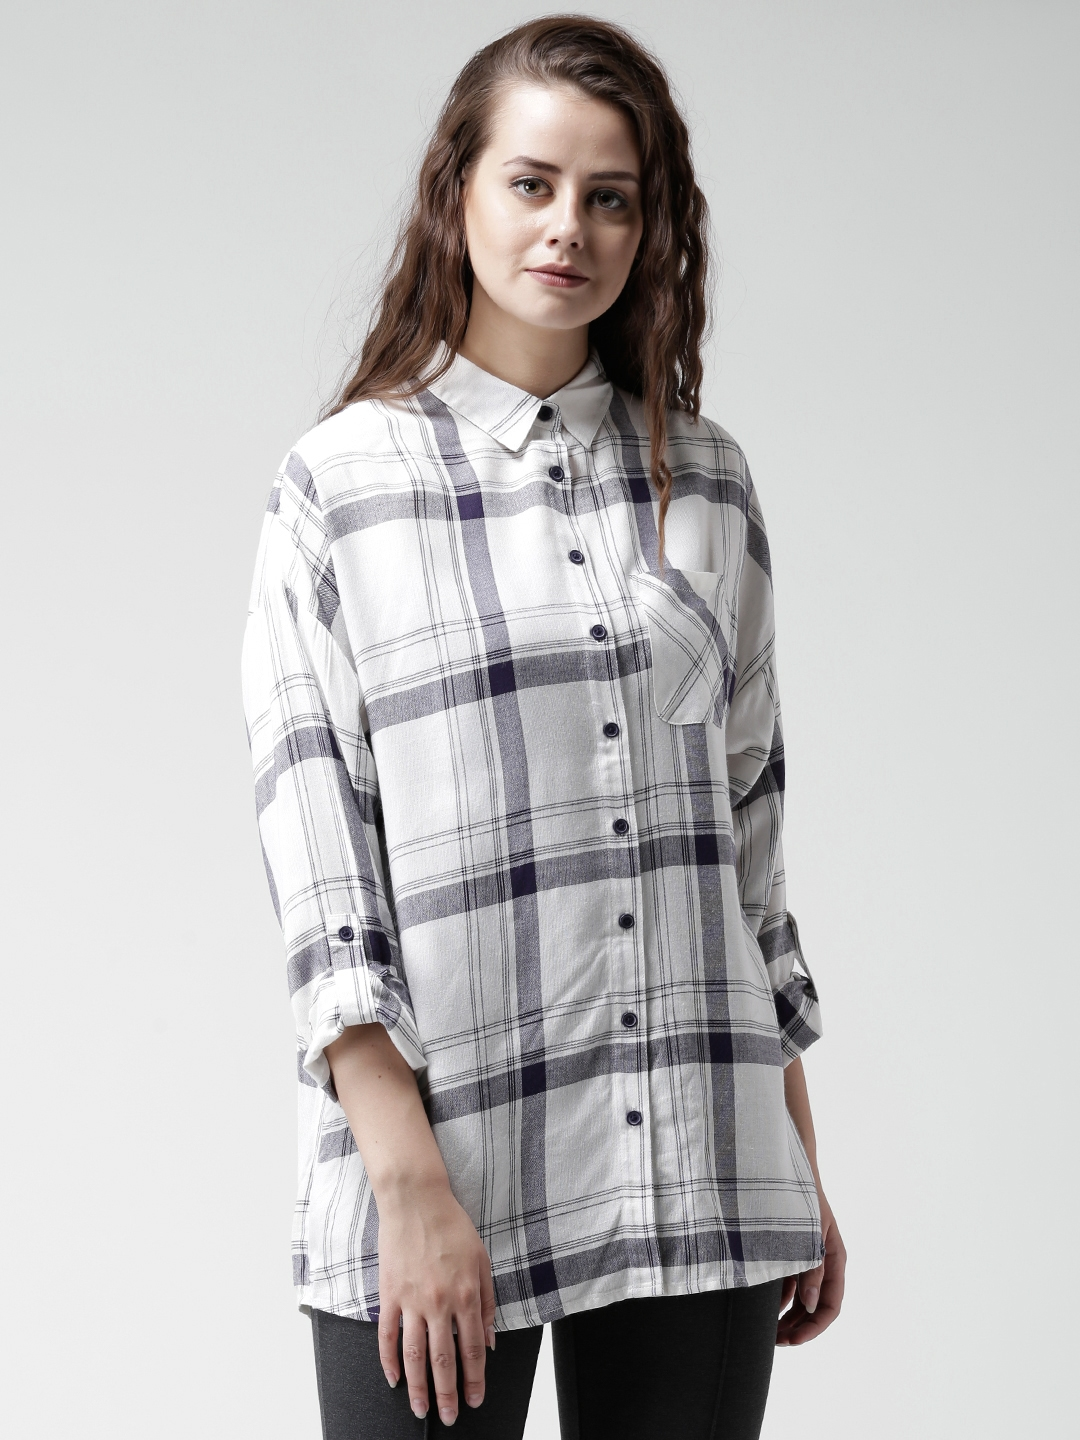 b4426a8f32c5b9 Buy New Look Off White & Navy Checked Shirt - Shirts for Women ...